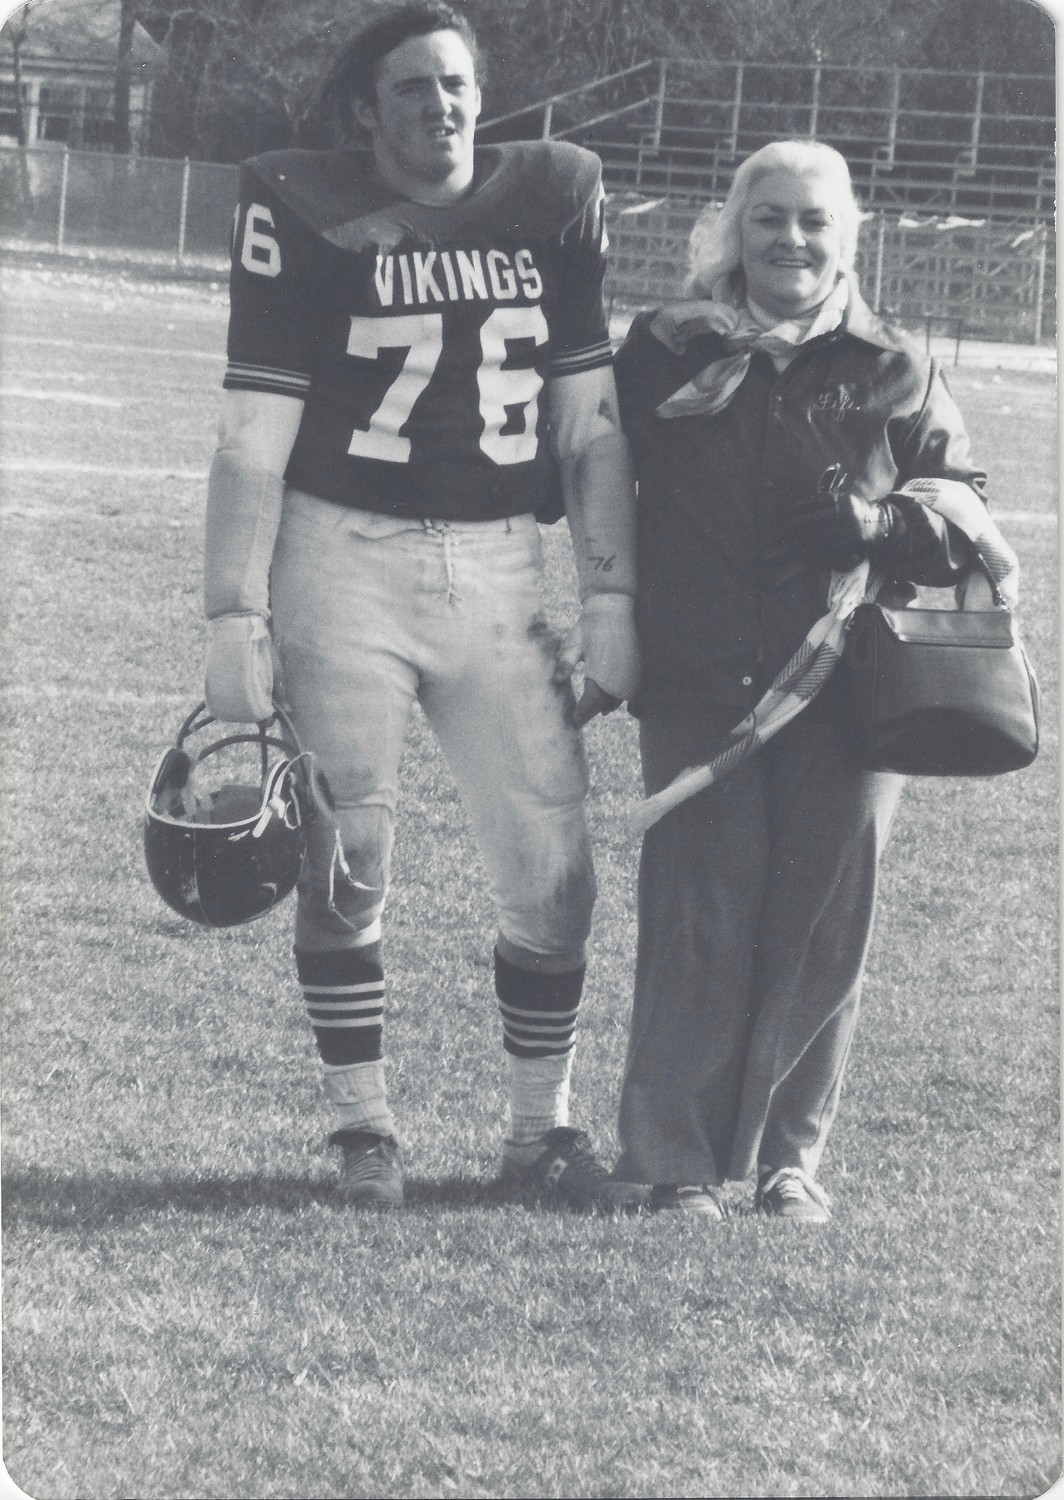 Patrick, one of the McFaddens' five sons, played for the Seaford Vikings in a playoff game the day after his father died in 1976. Fifi sat in the stands while Patrick was given a special introduction in the game's opening ceremony.